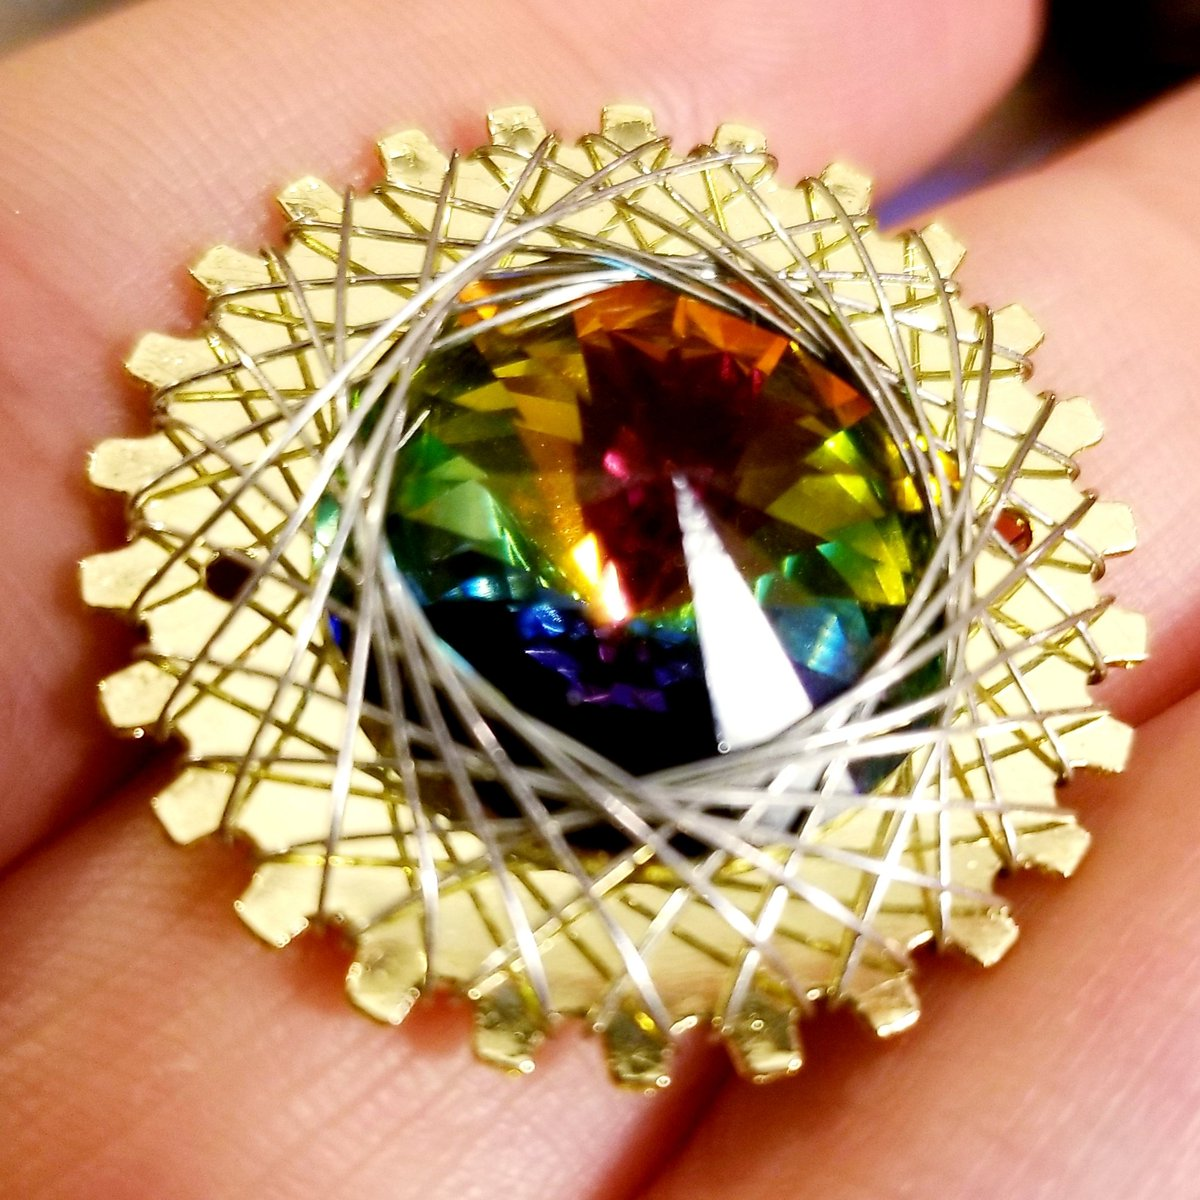 Ive also got this Ive been playing with... brass & silver + rainbow crystal.